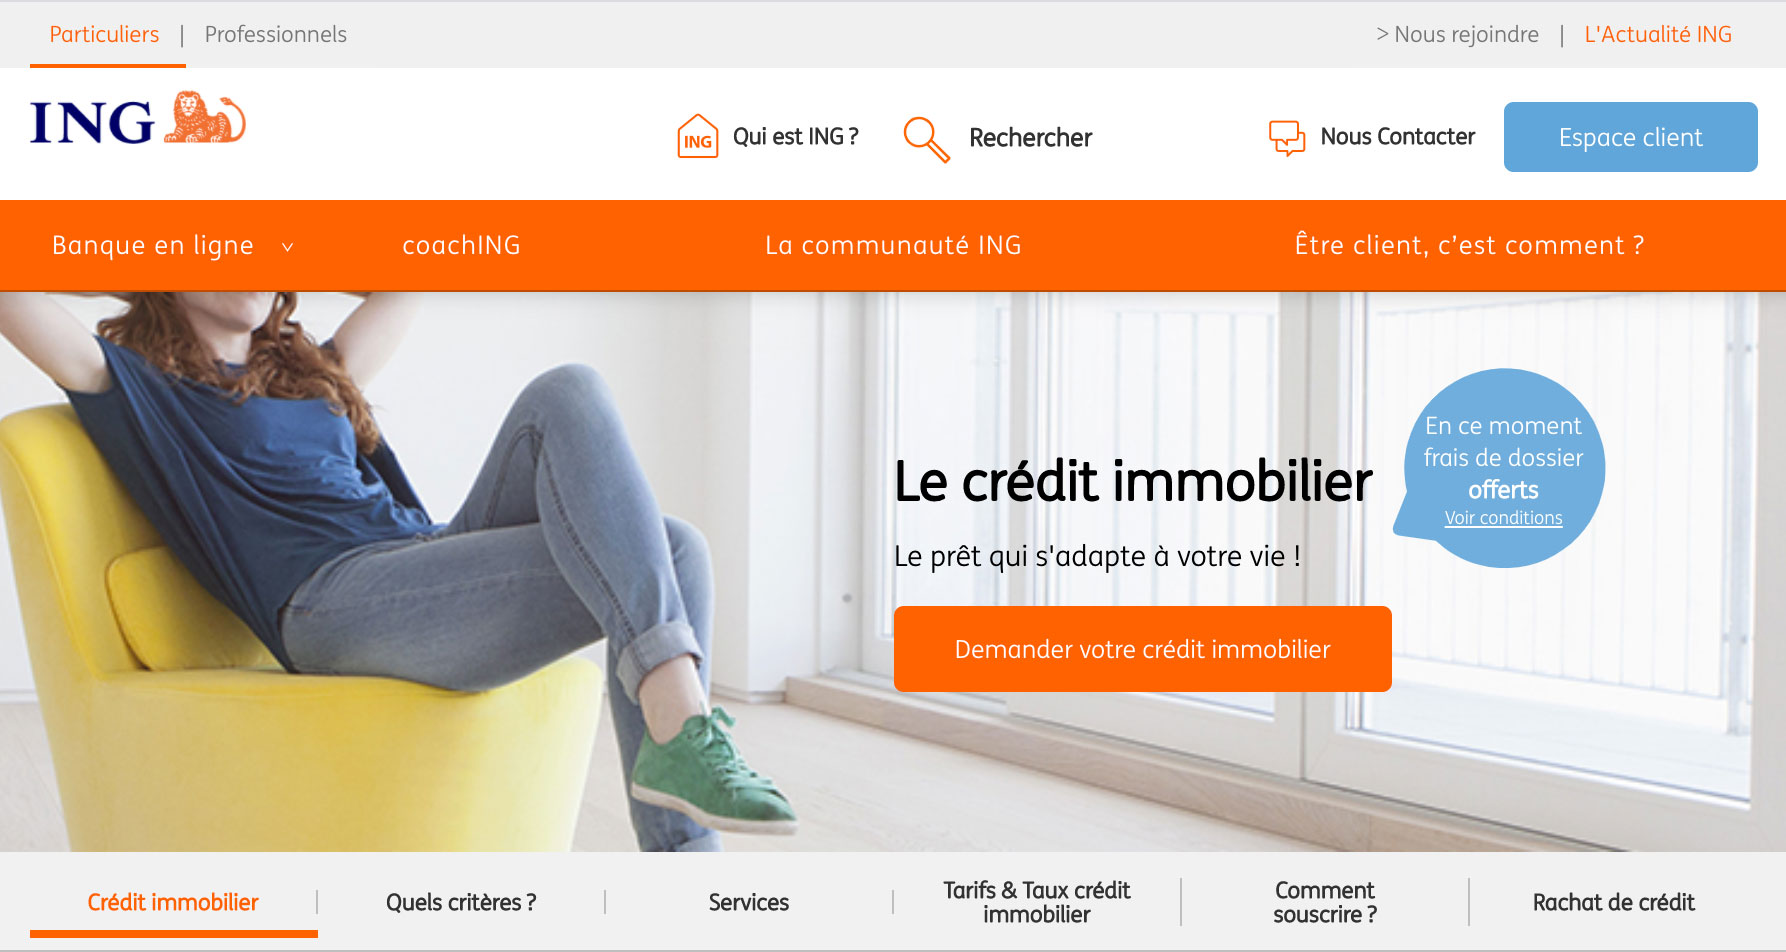 Prêt immobilier ING